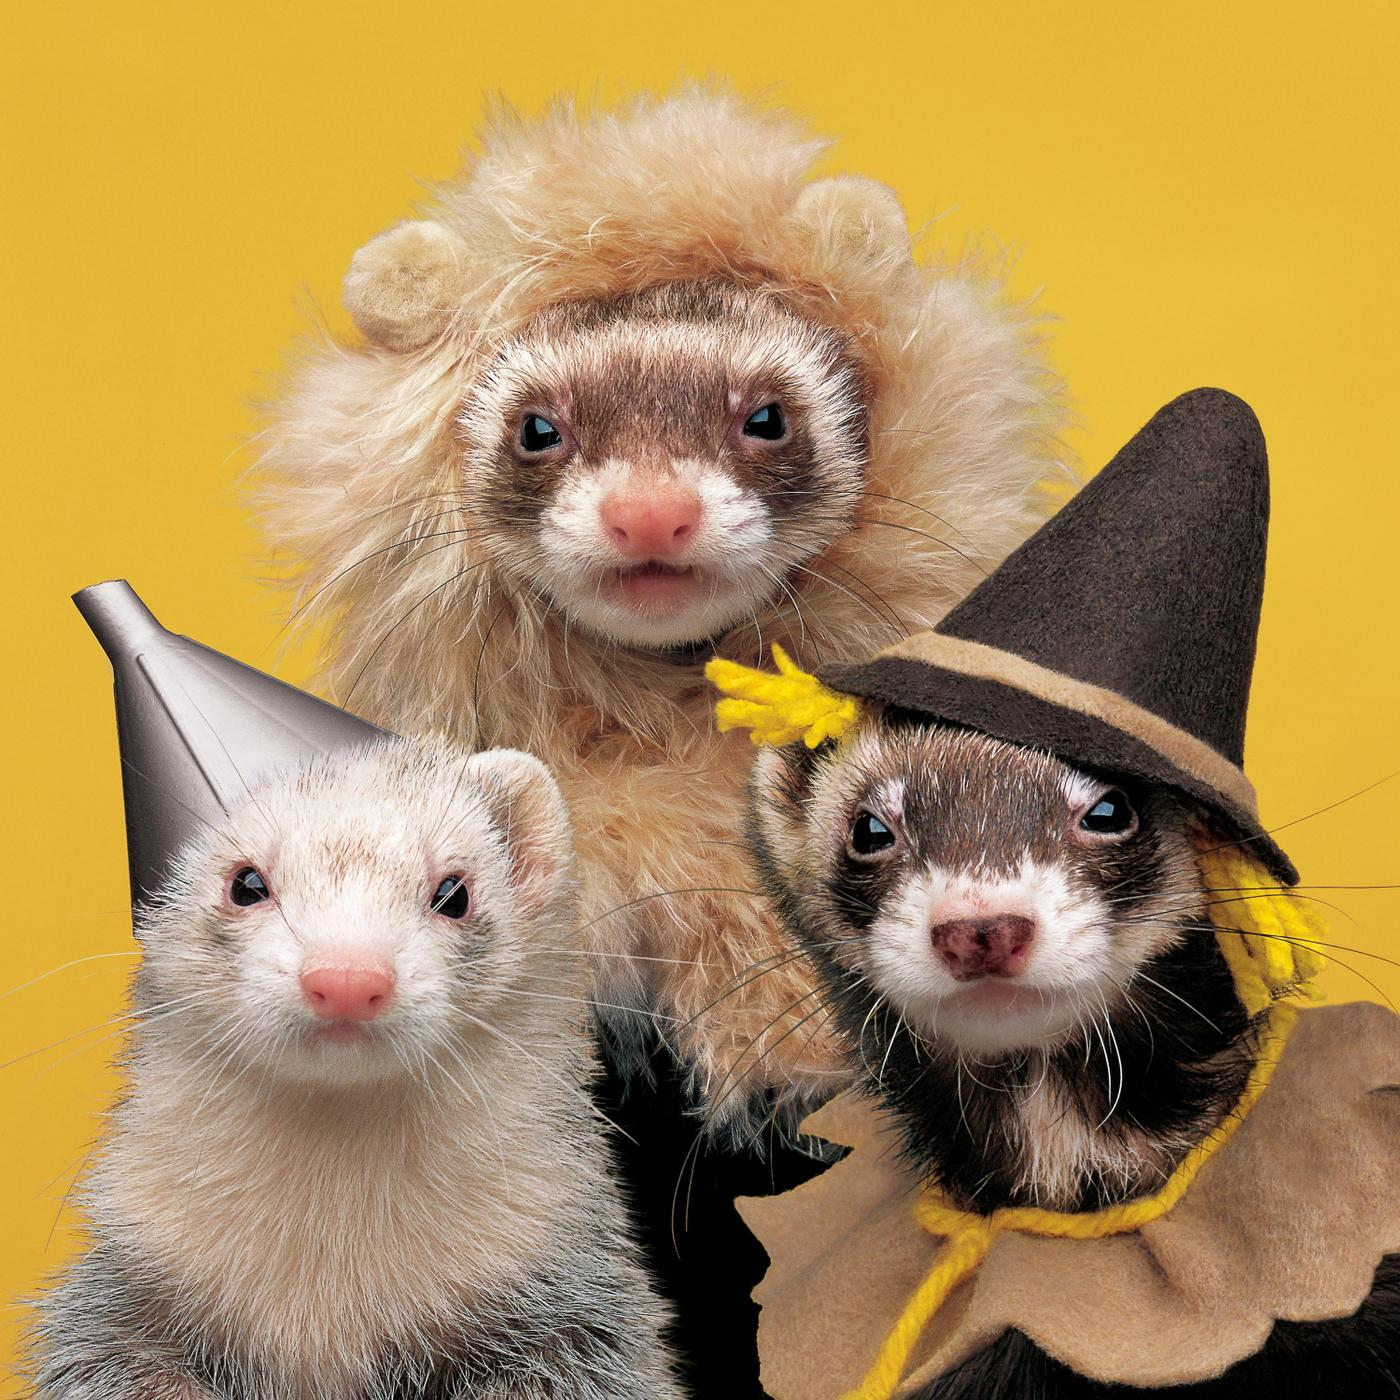 Be yourself!!! But maybe wait a few weeks to show the other kids pictures of your dressed up ferrets...